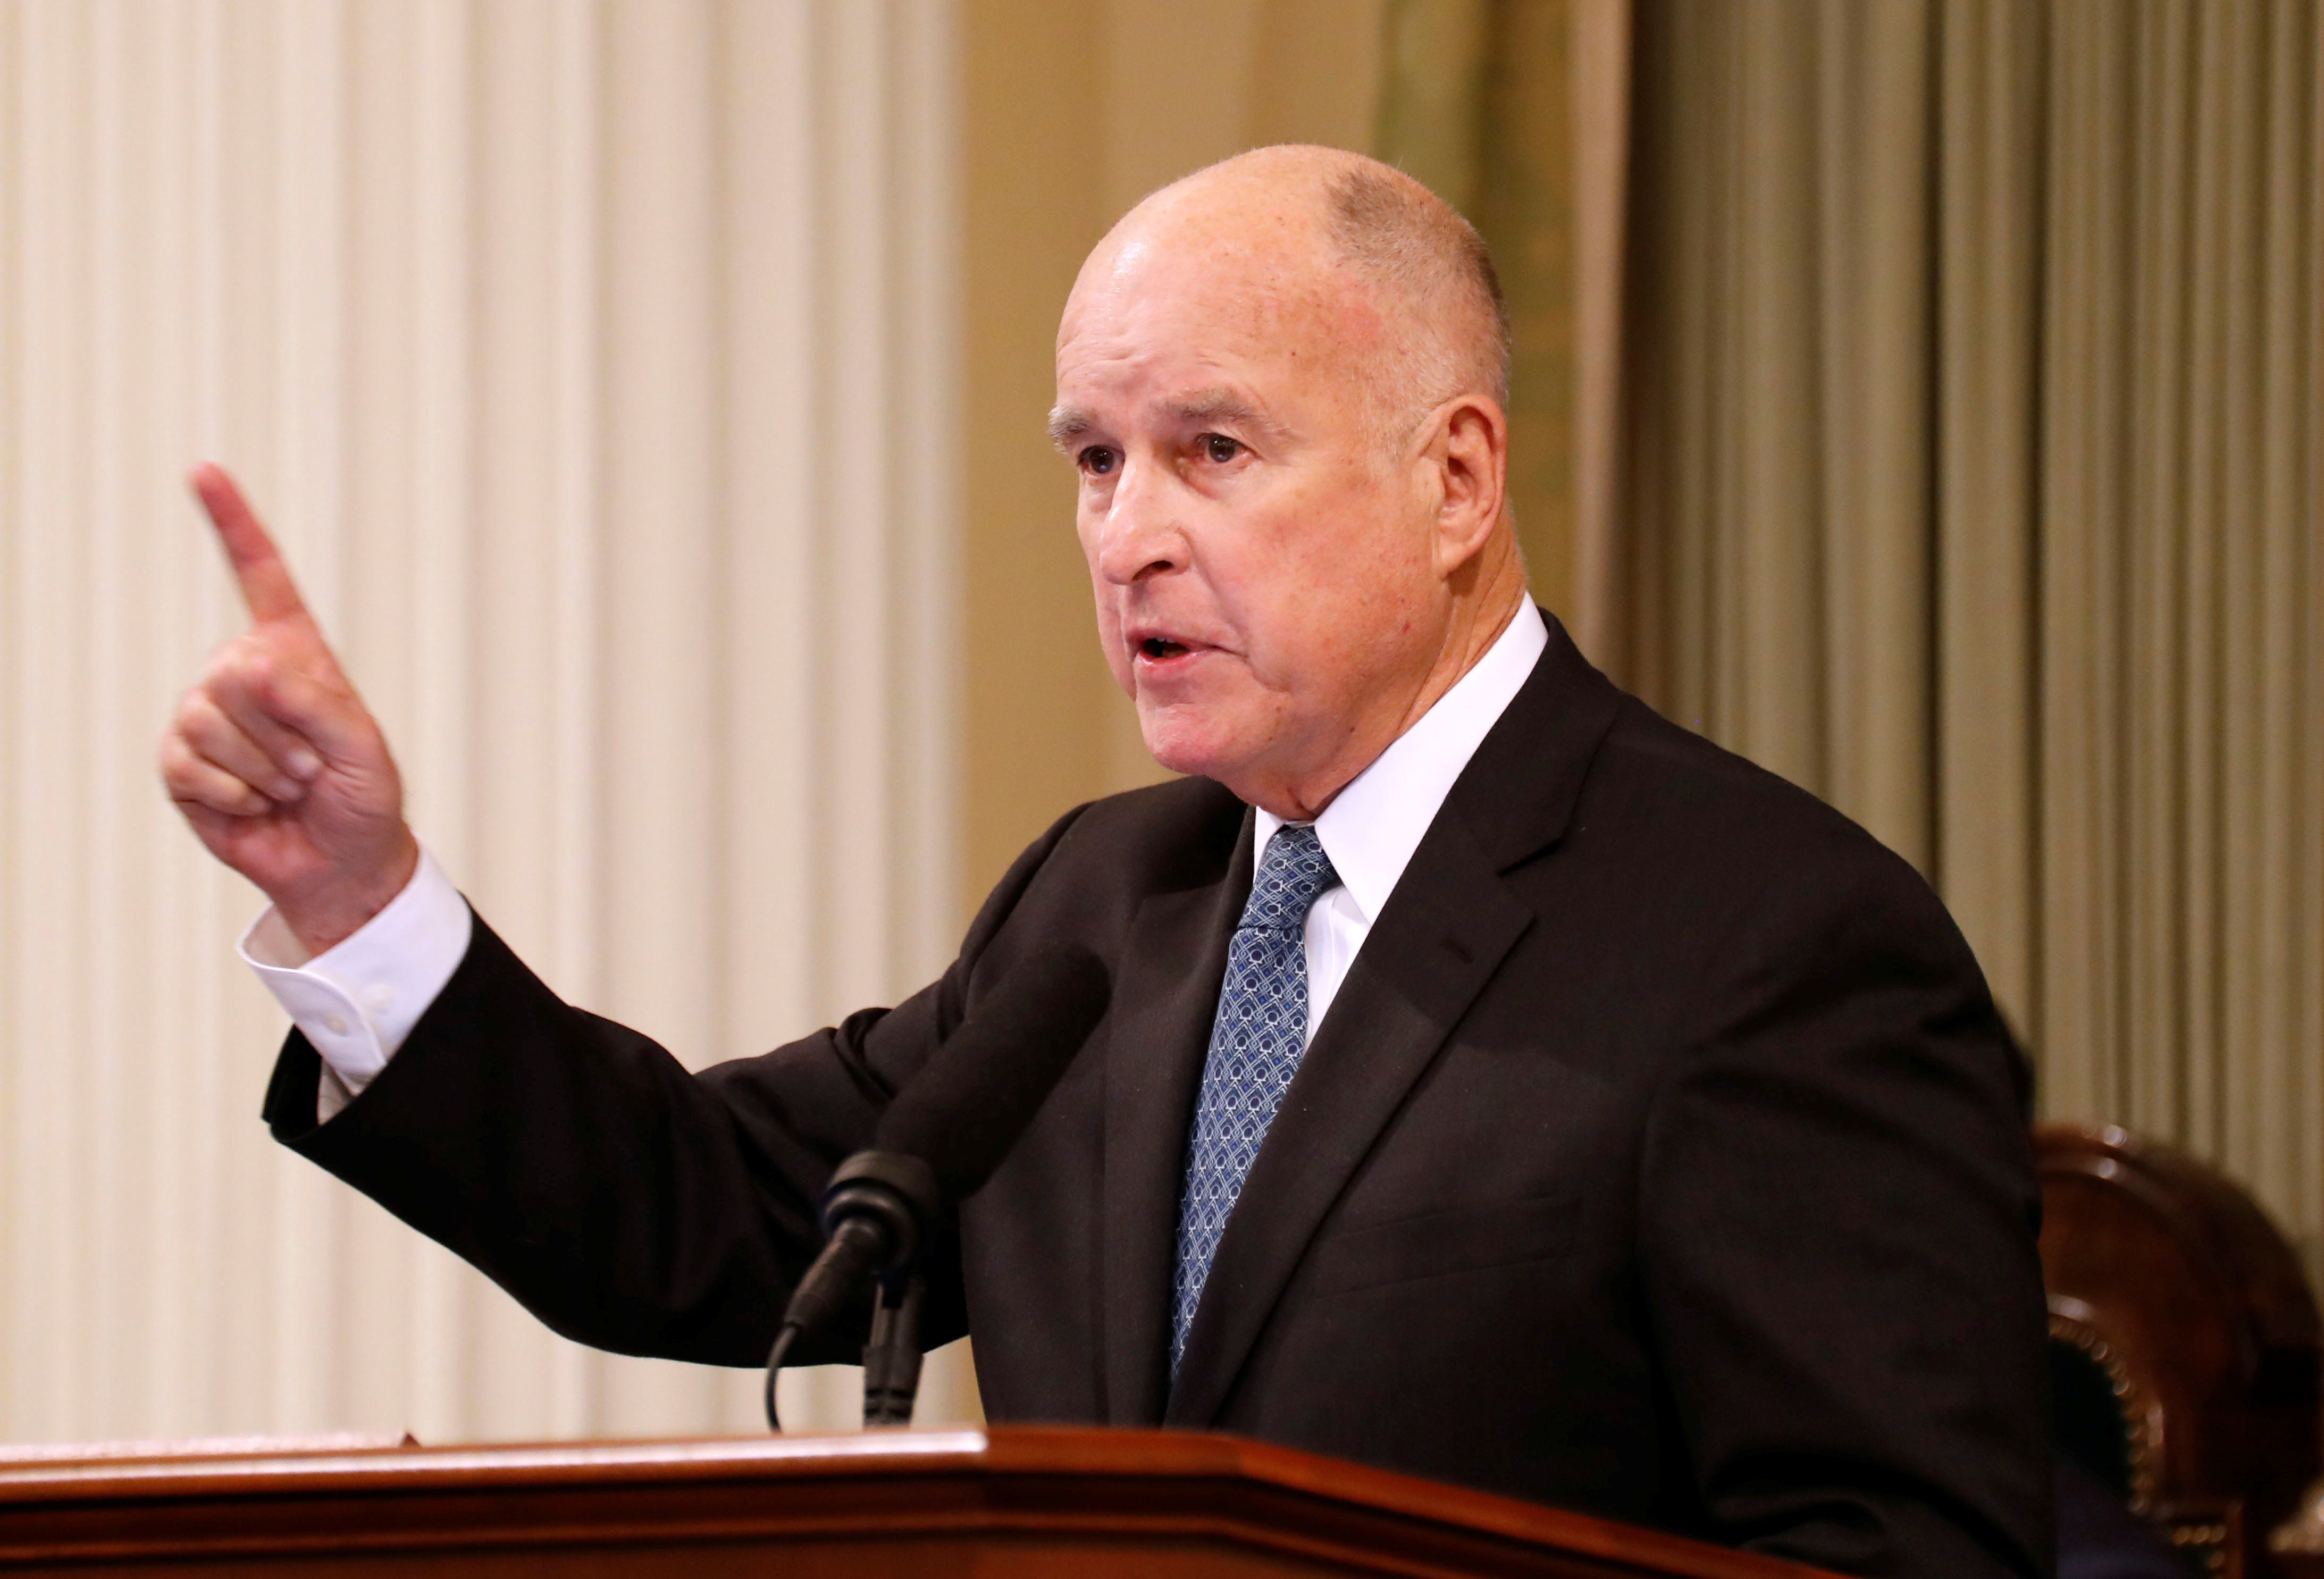 California Governor Jerry Brown delivers his final state of the state address in Sacramento, California, U.S., January 25, 2018. REUTERS/Fred Greave